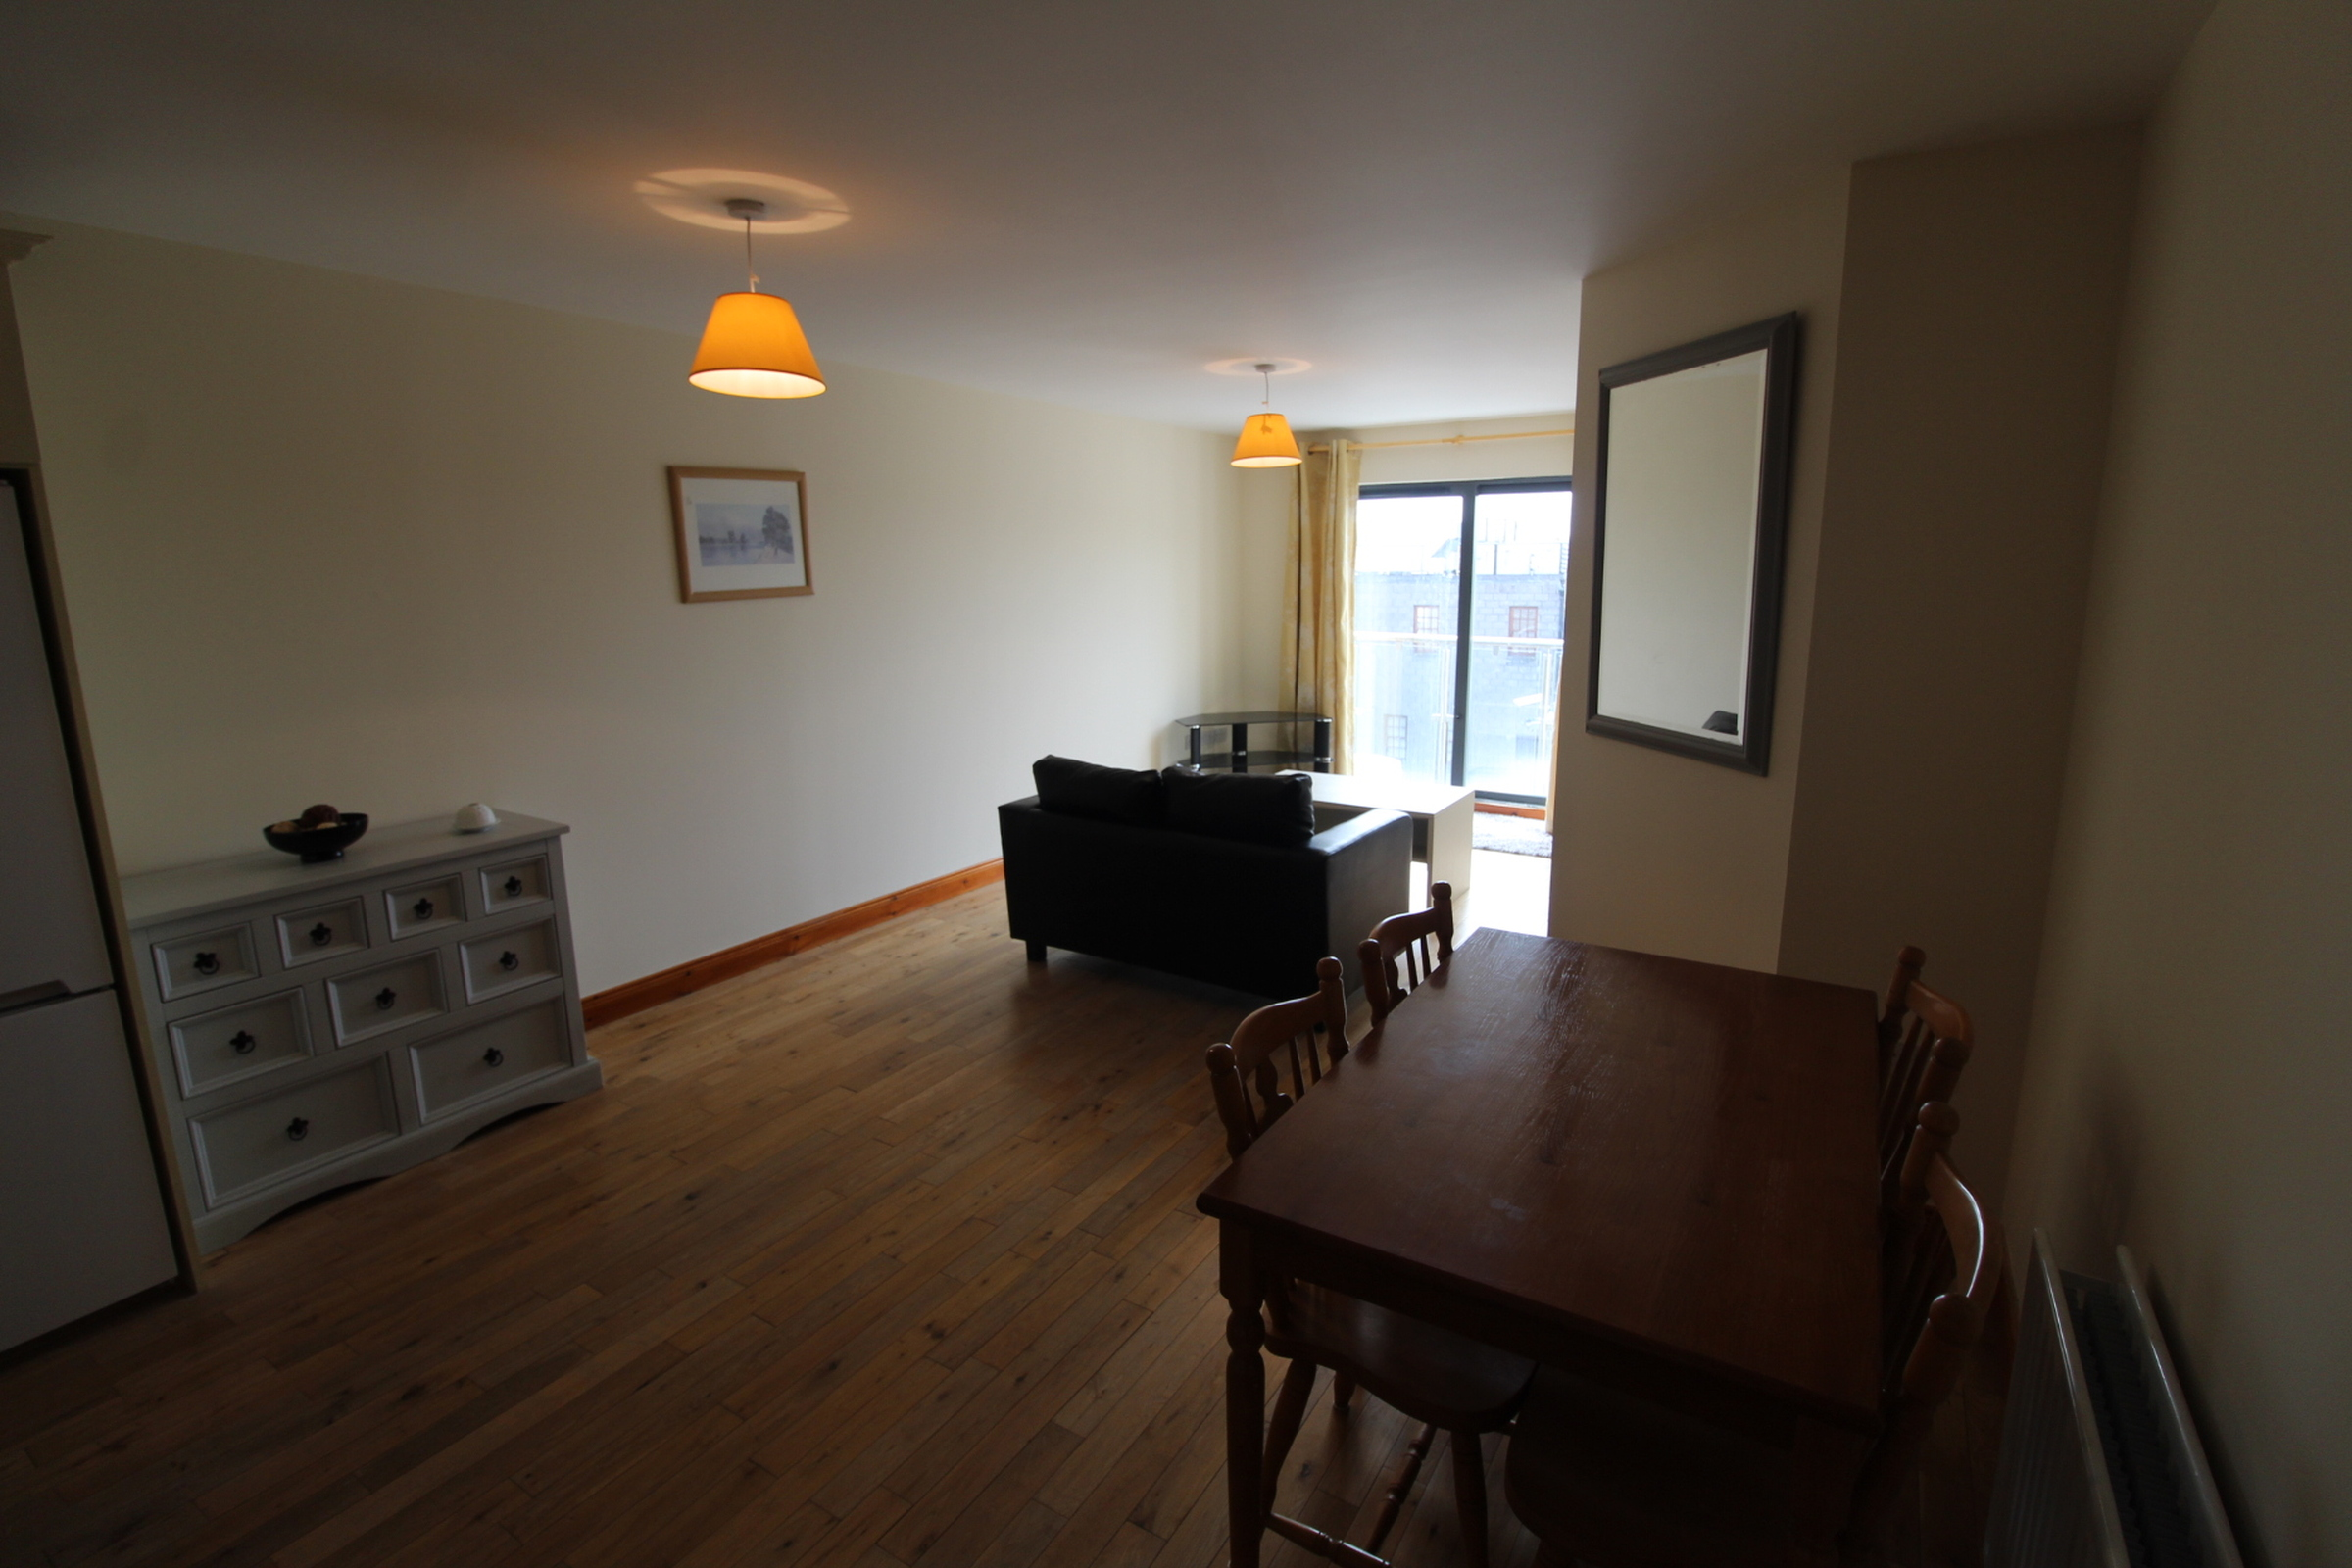 Apartment 26, The Towers, Mallow, Co. Cork